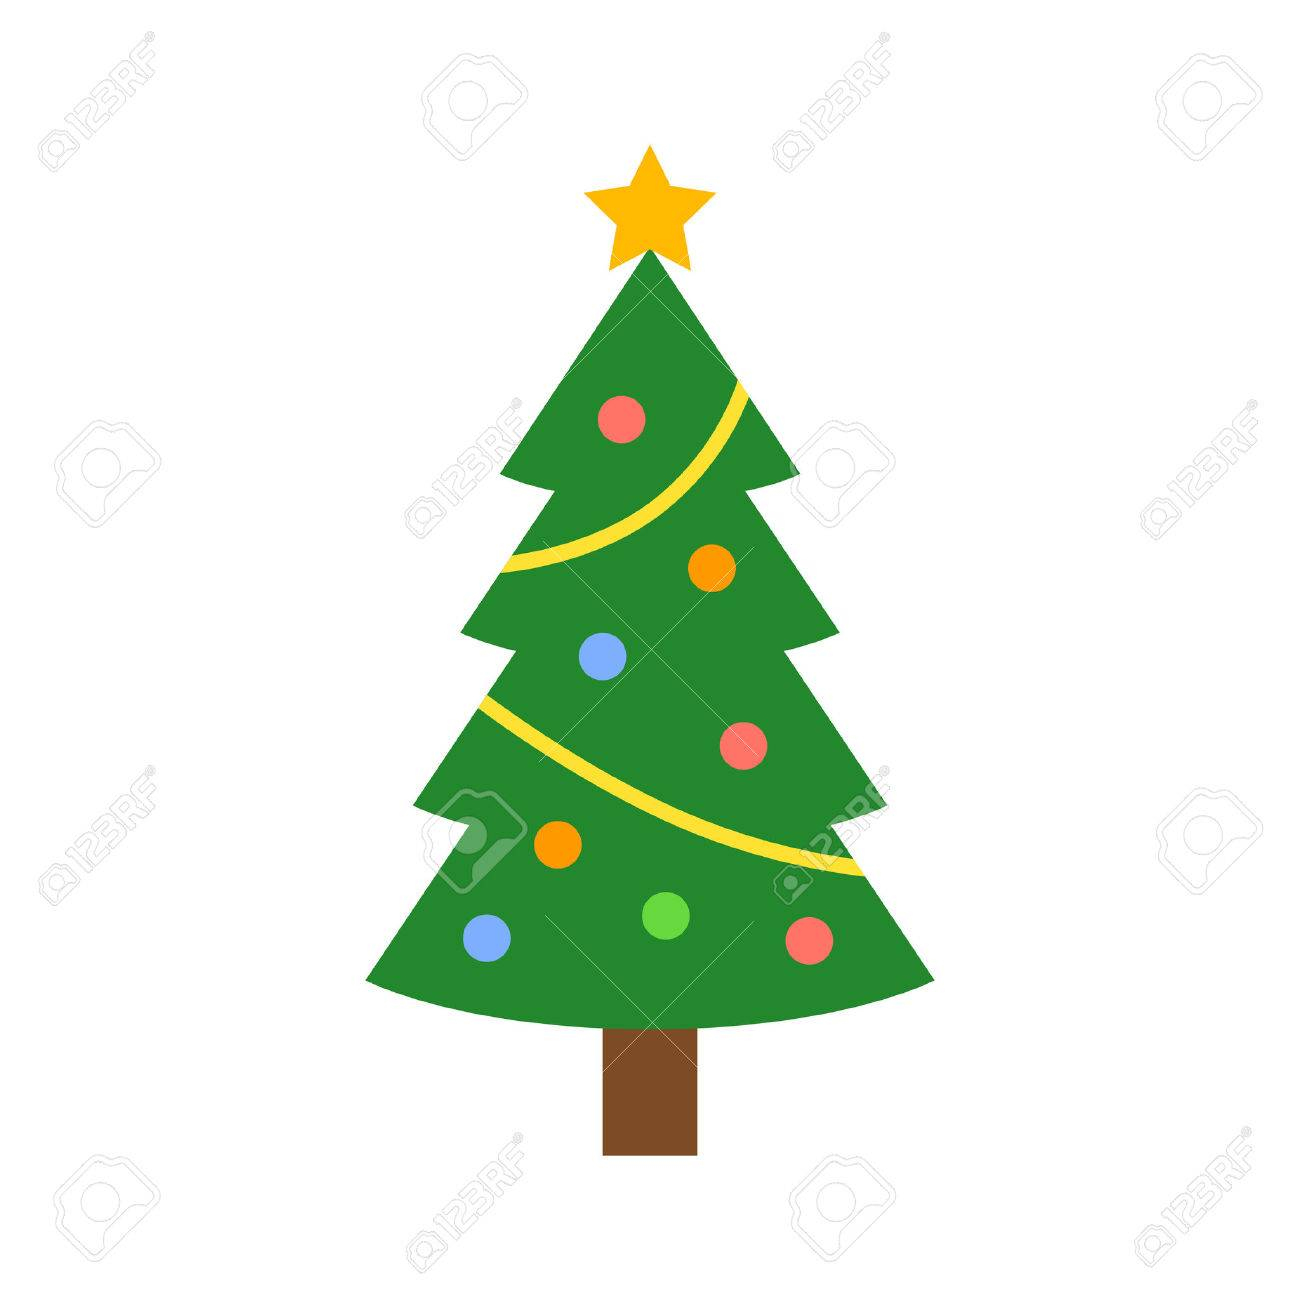 Christmas Tree With Decorations And Star Flat Icon For Apps And